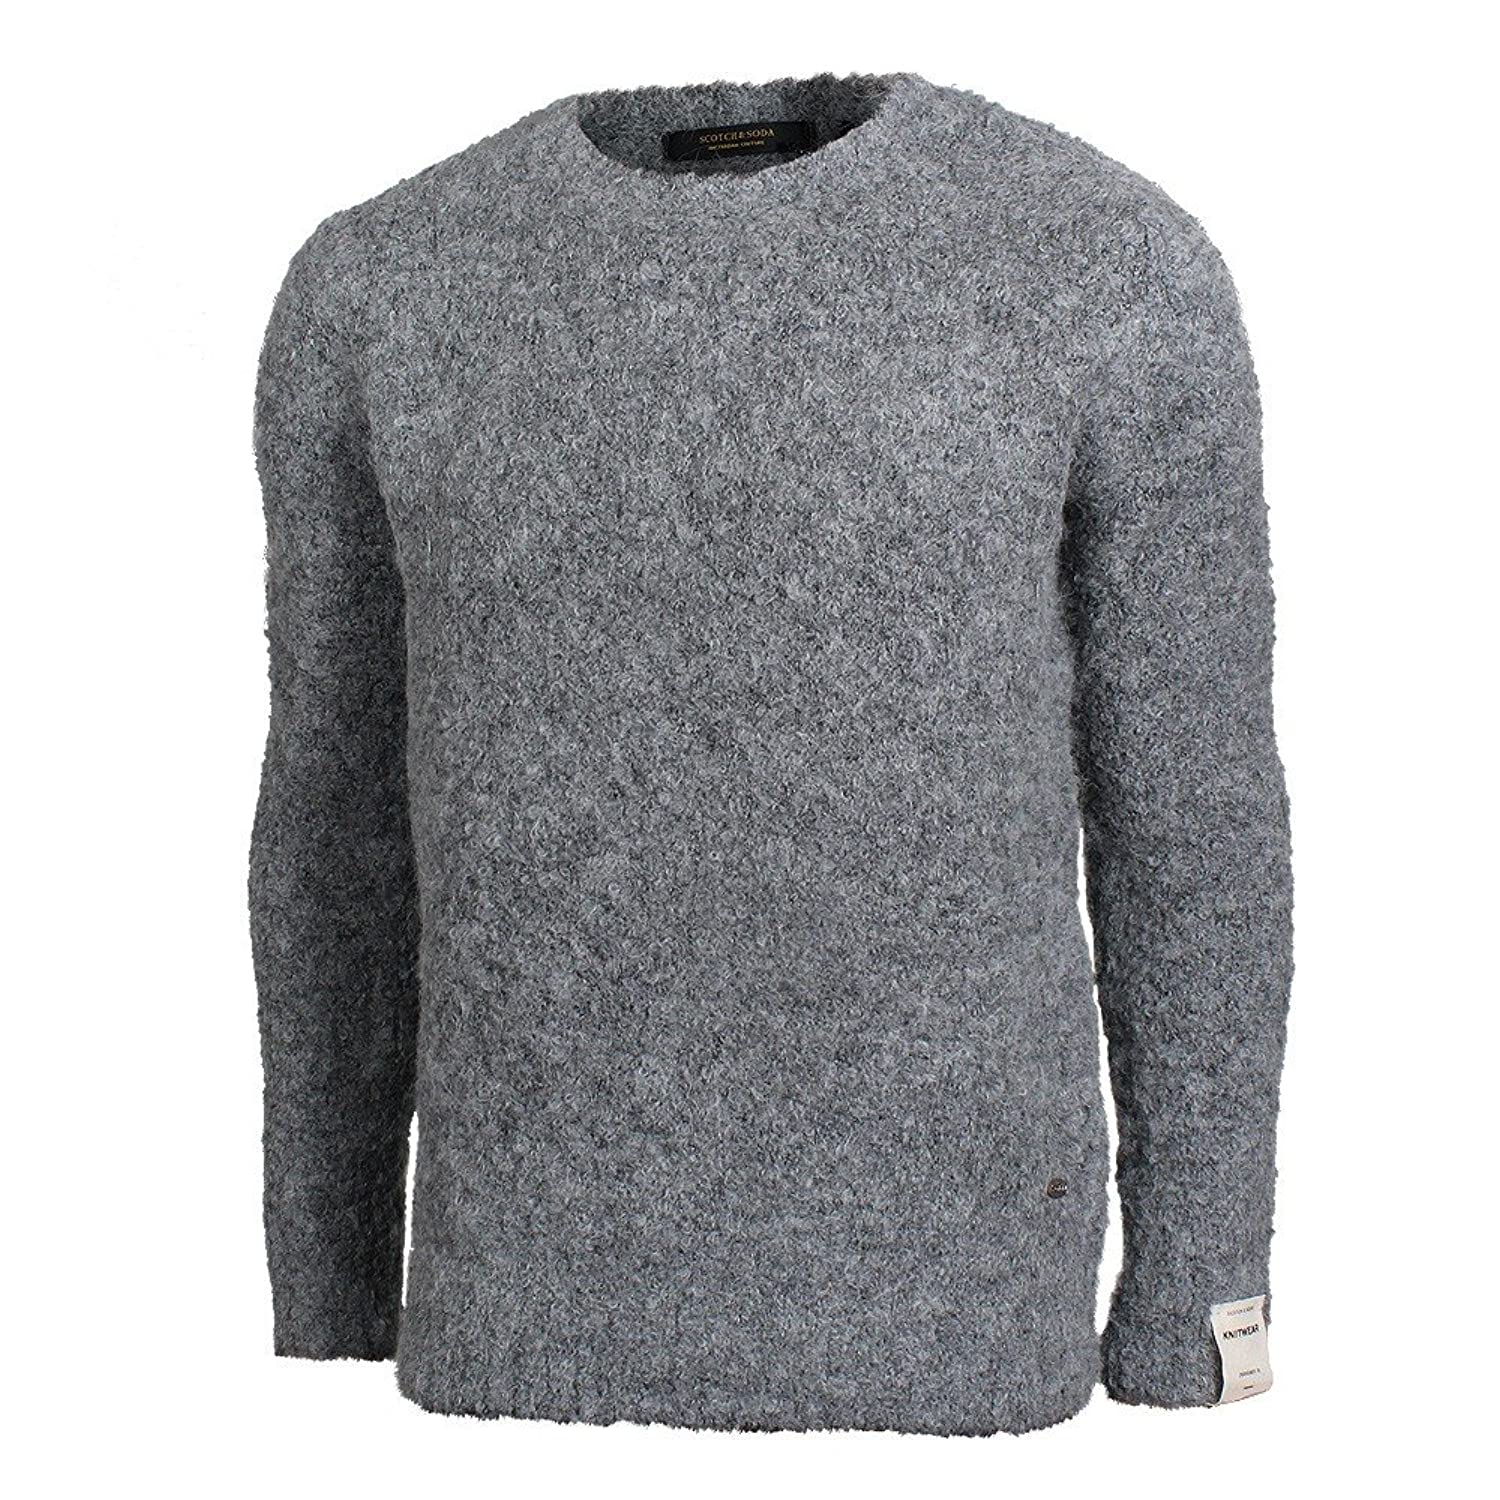 Scotch & Soda Bouclé Strickpullover grau